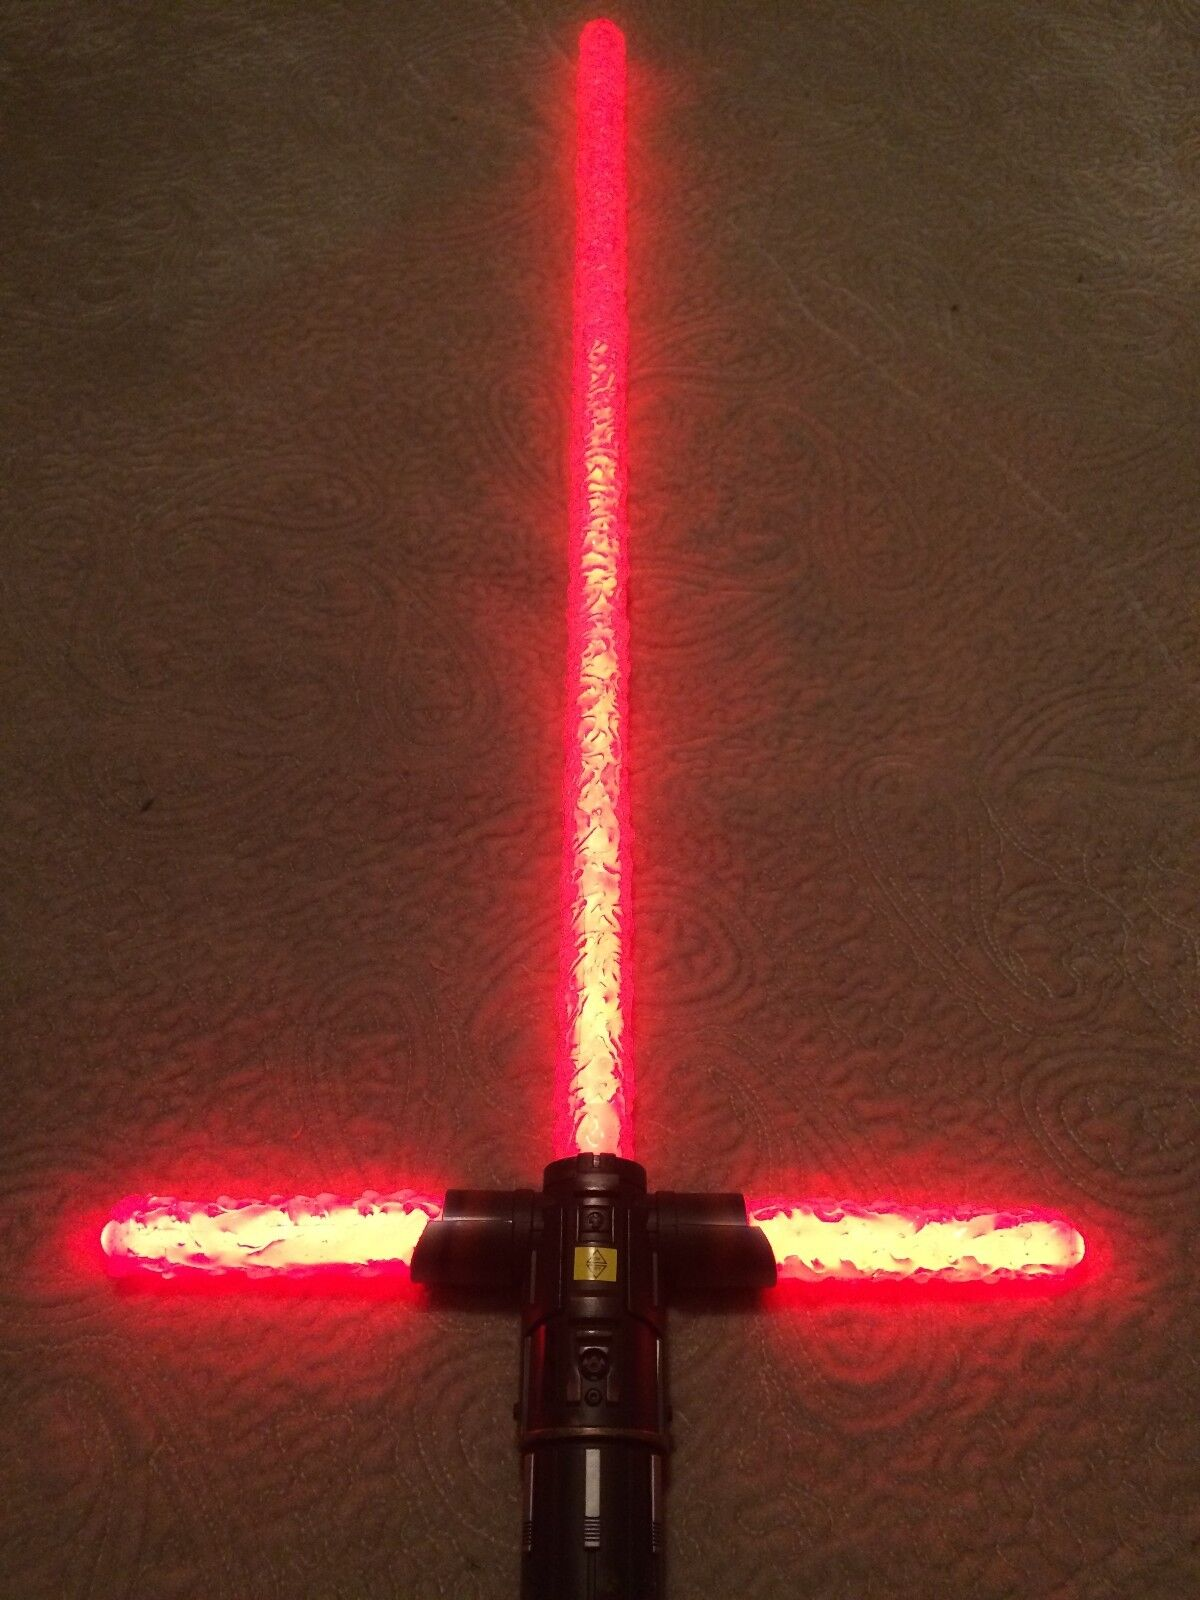 STAR WARS KYLO REN LIGHTSABER UNSTABLE BLADE COVERS, VHTF, FOR SHOW/COSPLAY - $26.50